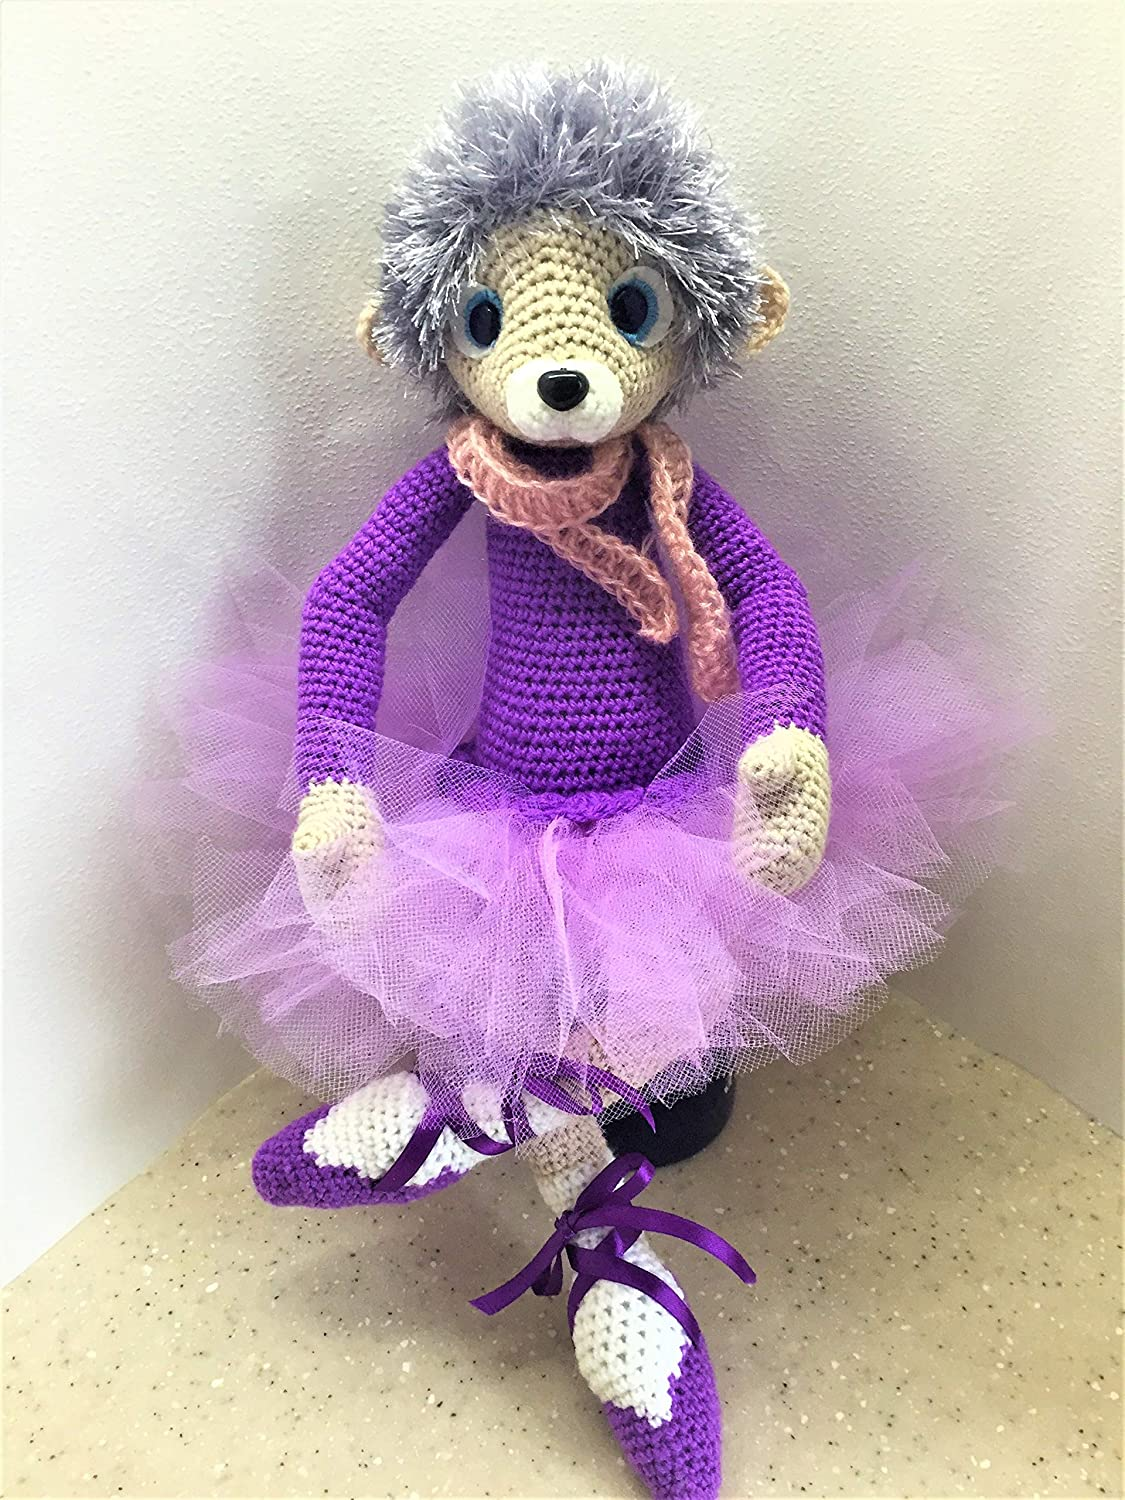 Toy Hedgehog for Children or Home Decor Knitted Doll Ballerina Soft Toy Hedgehog Dancing Doll Hedgehog Handmade Interior Toy